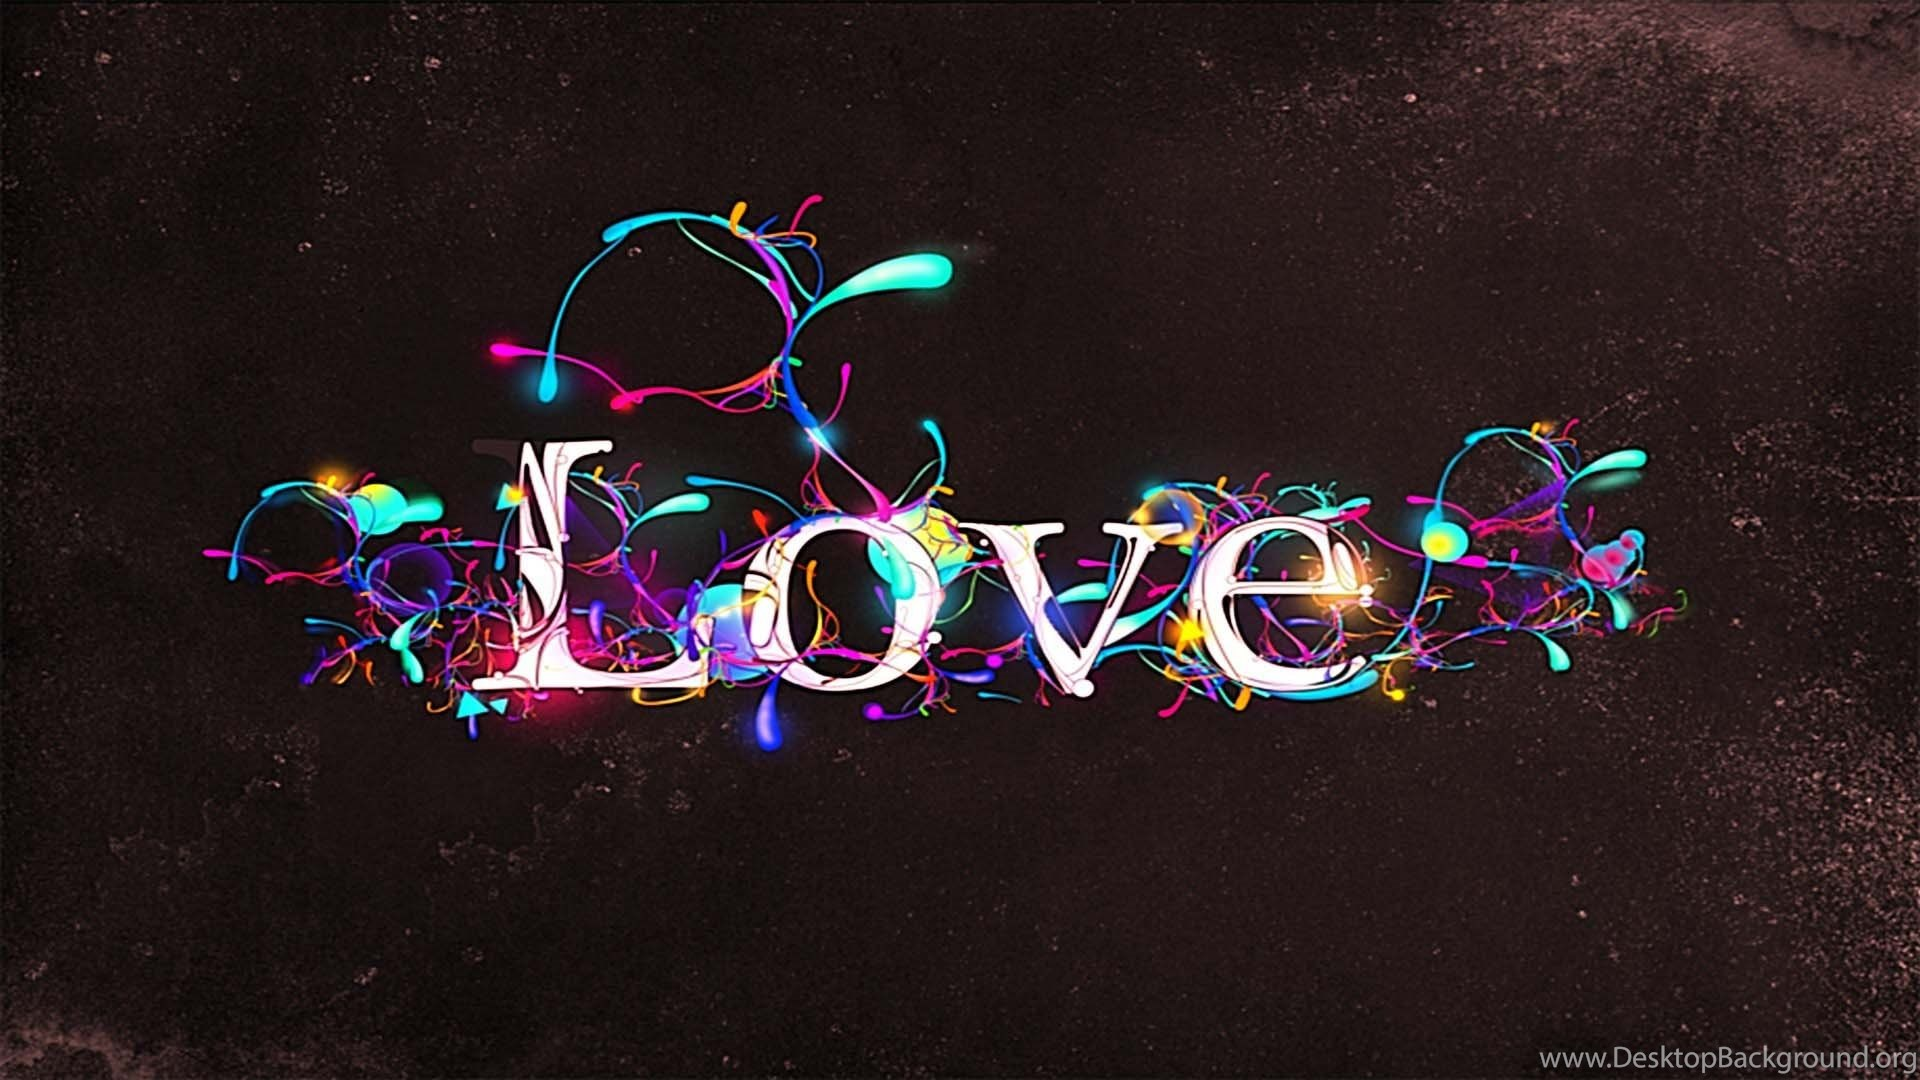 love pc wallpapers 1080x1920 cool pc wallpapers desktop background